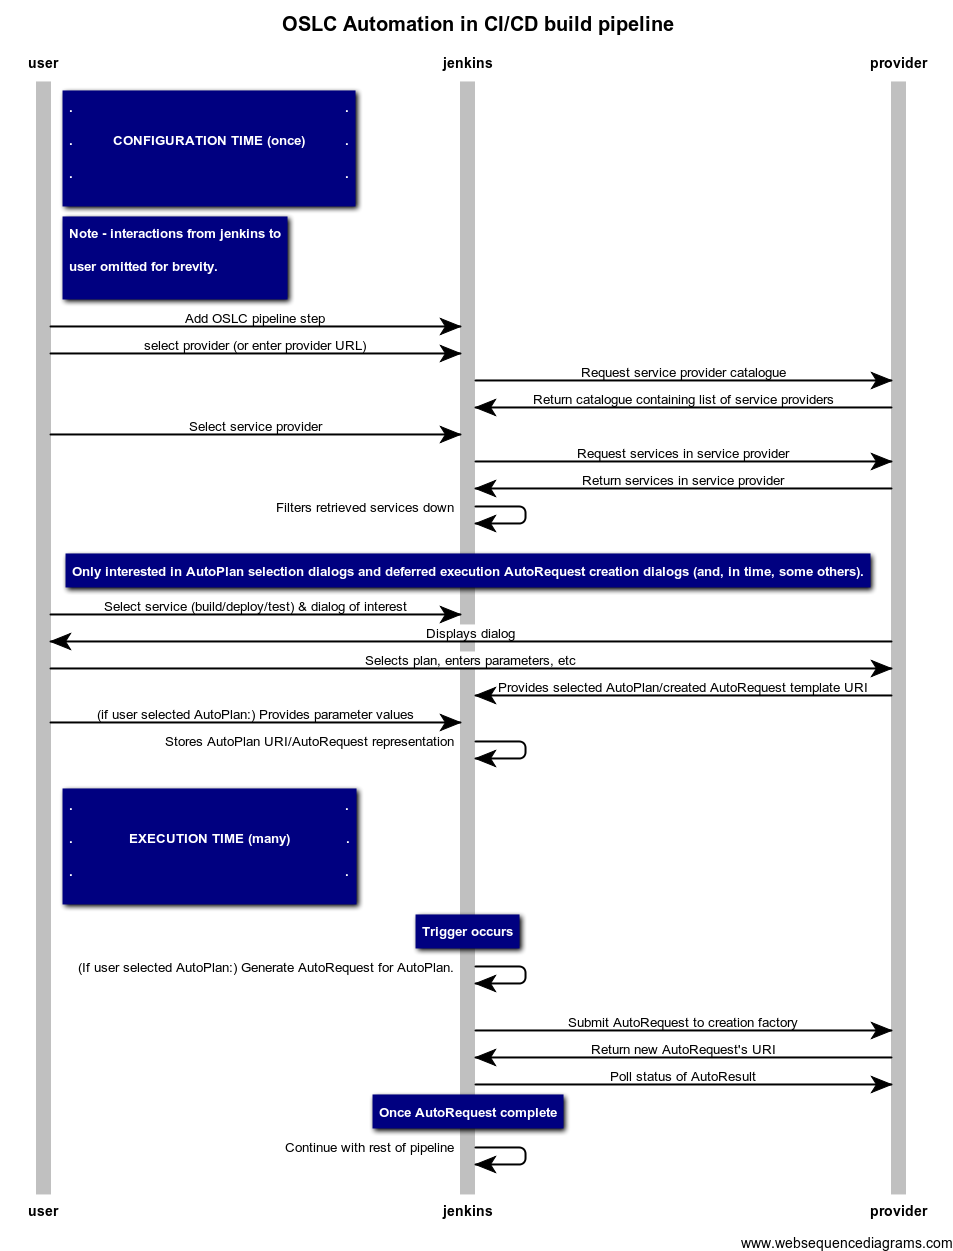 http://tools.oasis-open.org/version-control/browse/wsvn/oslc-automation/scenarios/DeployingBuildArtifactsContinuousIntegration/sequence diagram.png